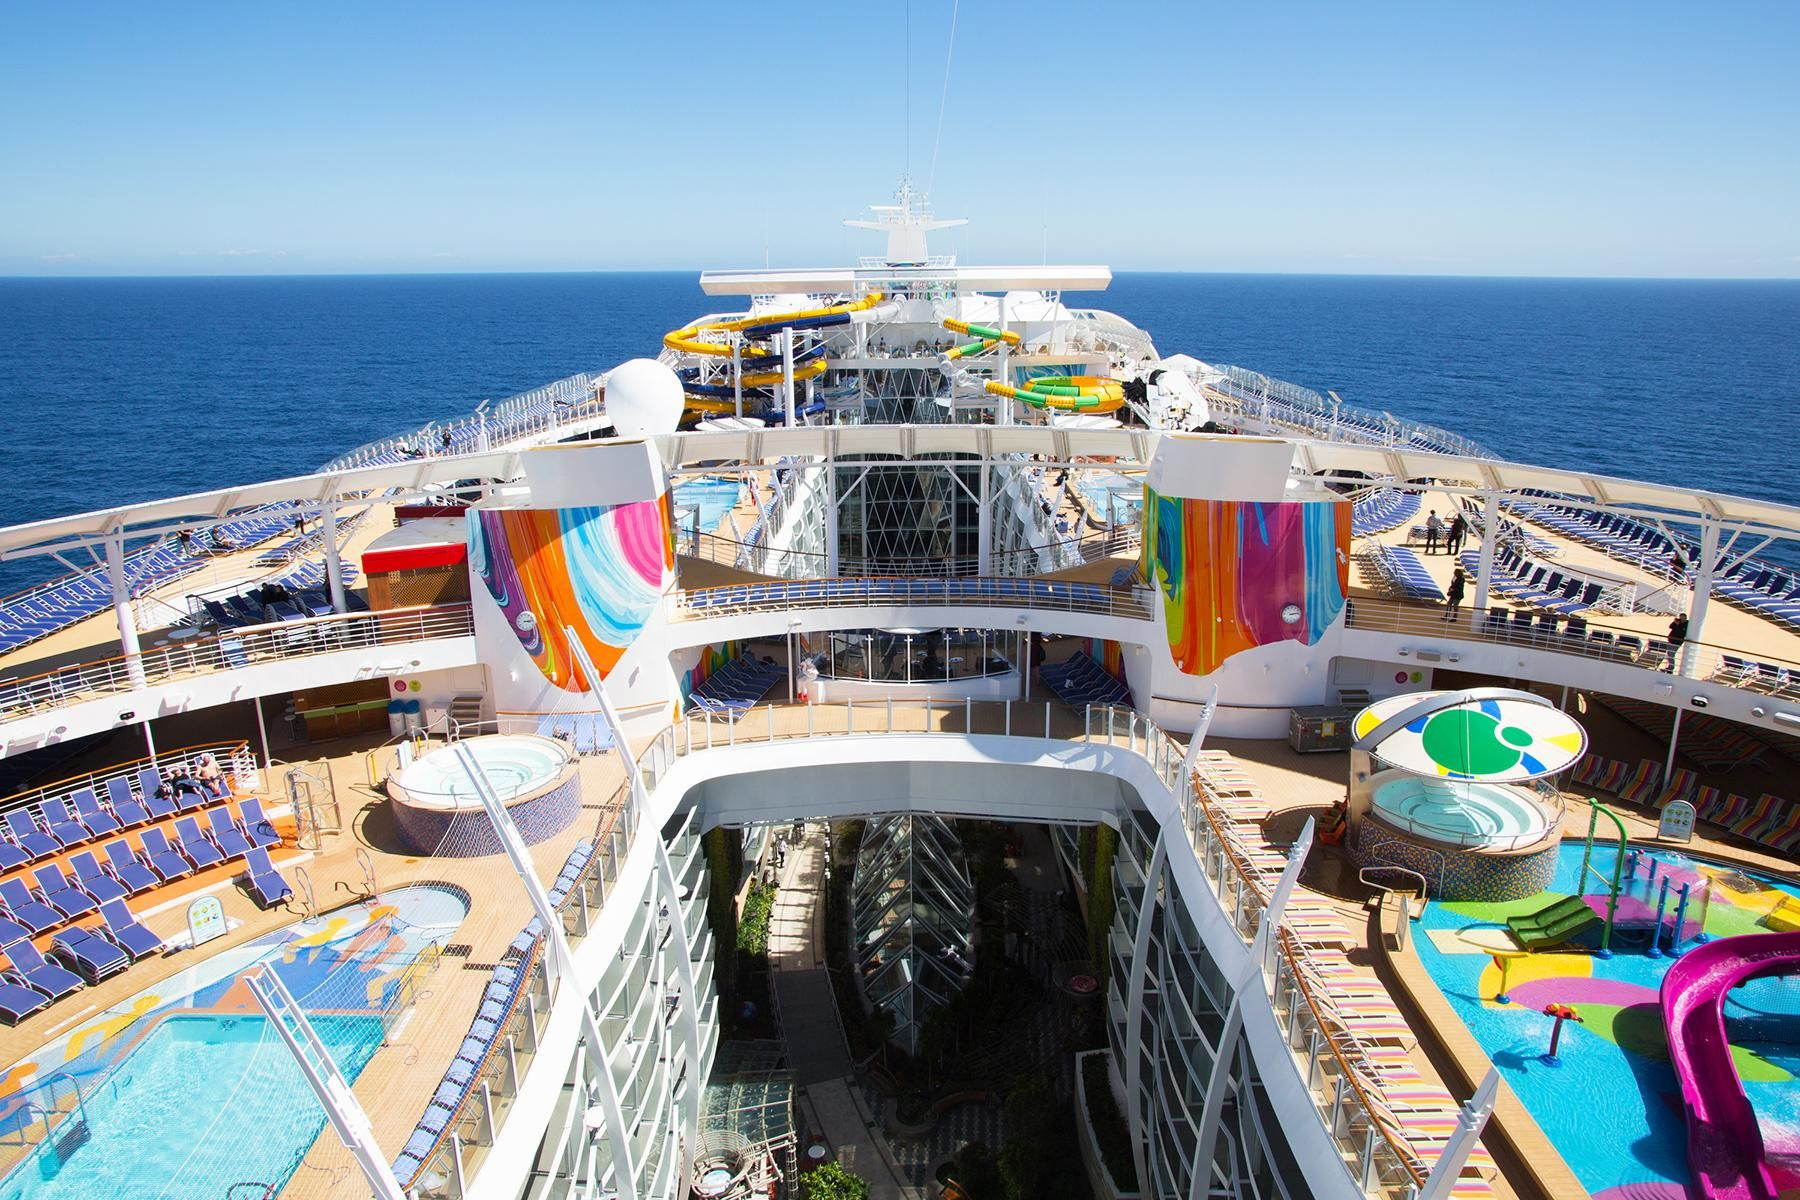 Worlds Largest Cruise Ship 2020.13 Crazy Things You Can Do On The Biggest Cruise Ship In The